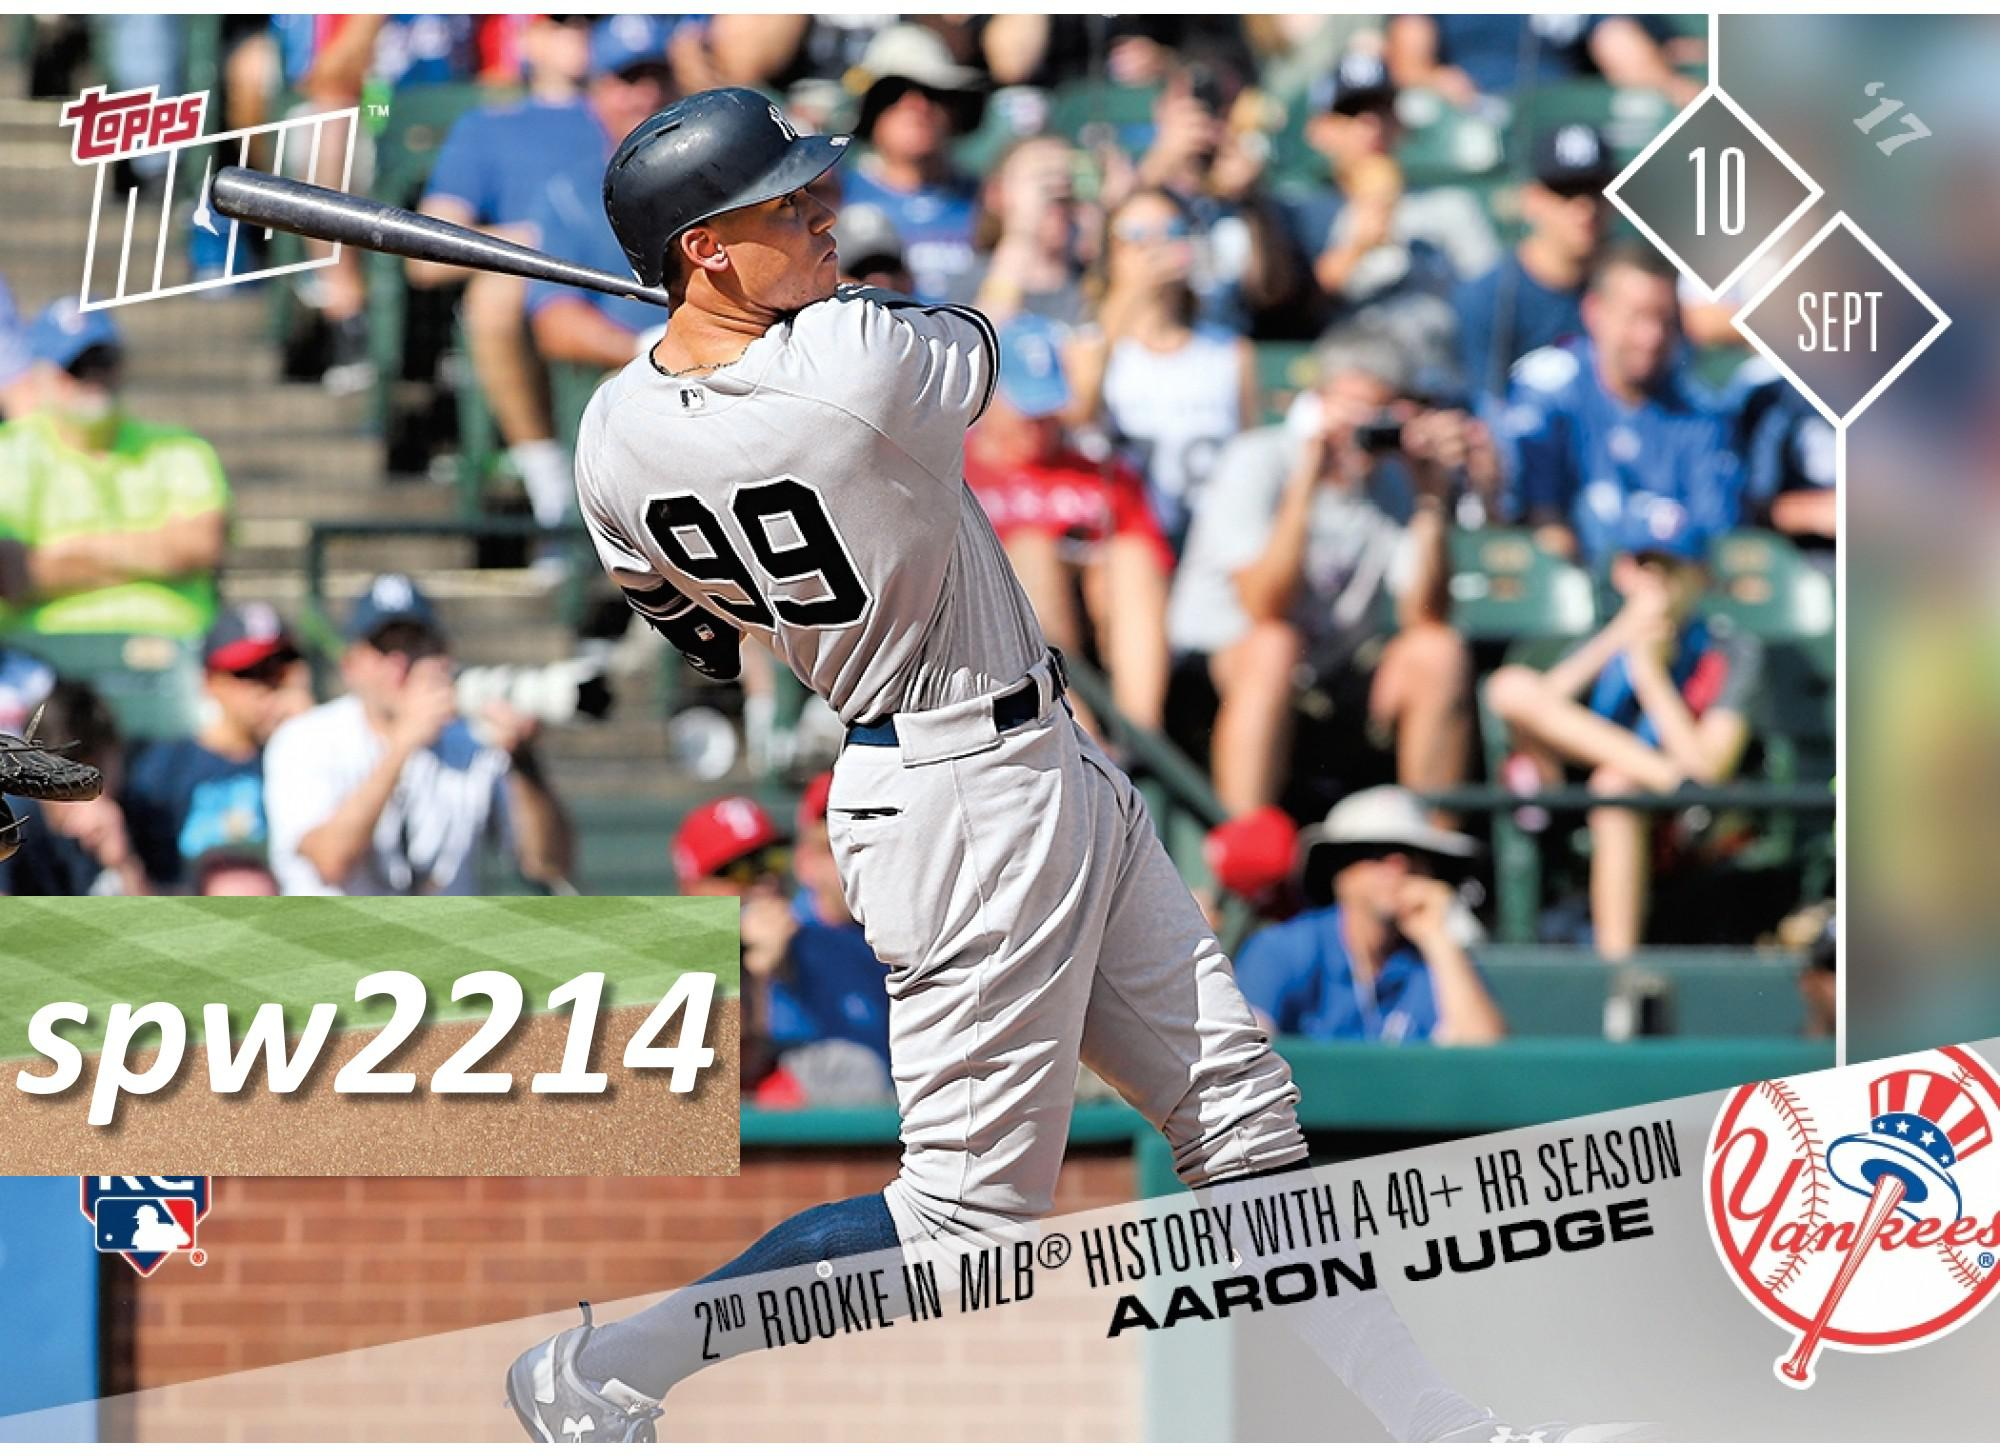 Aaron Judge 2017 Topps Now #585 - 2nd Rookie in MLB History With a 40+ HR Season